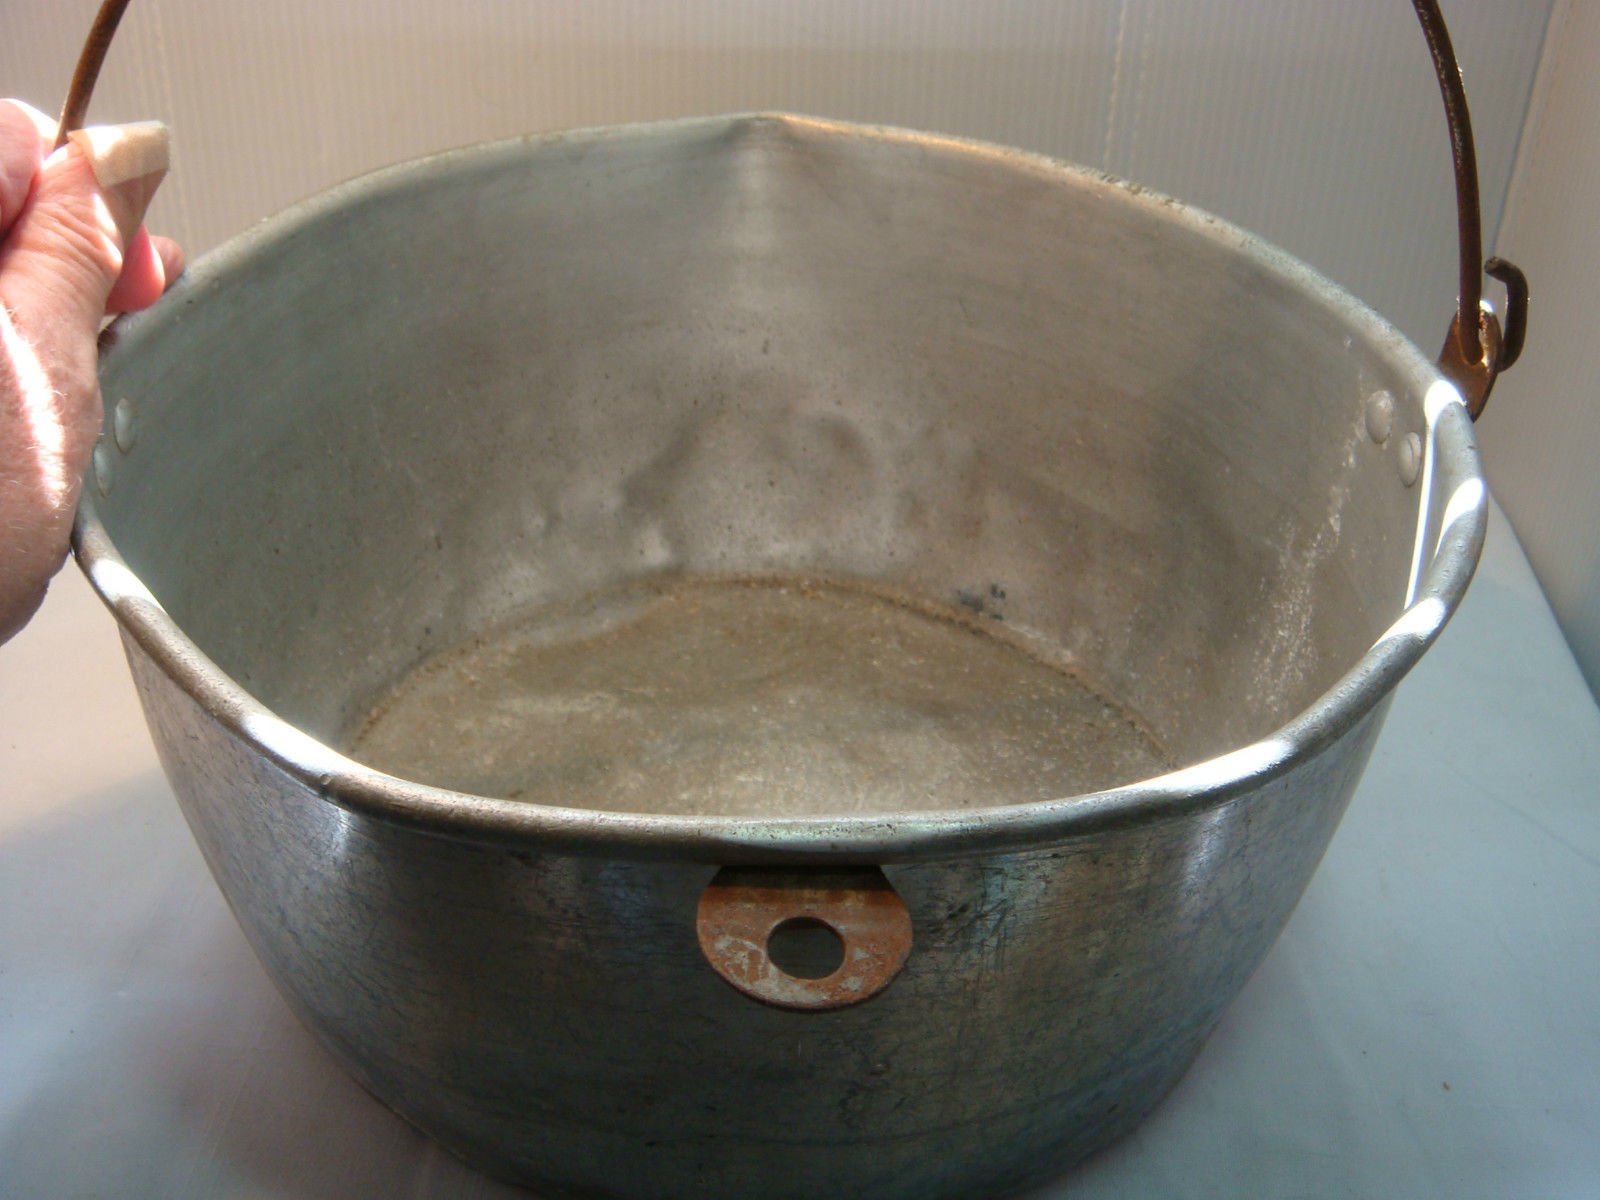 VINTAGE MILKING PAIL - KITCHEN PAN - ALUMINUM - VERY USED & VERY OLD image 3